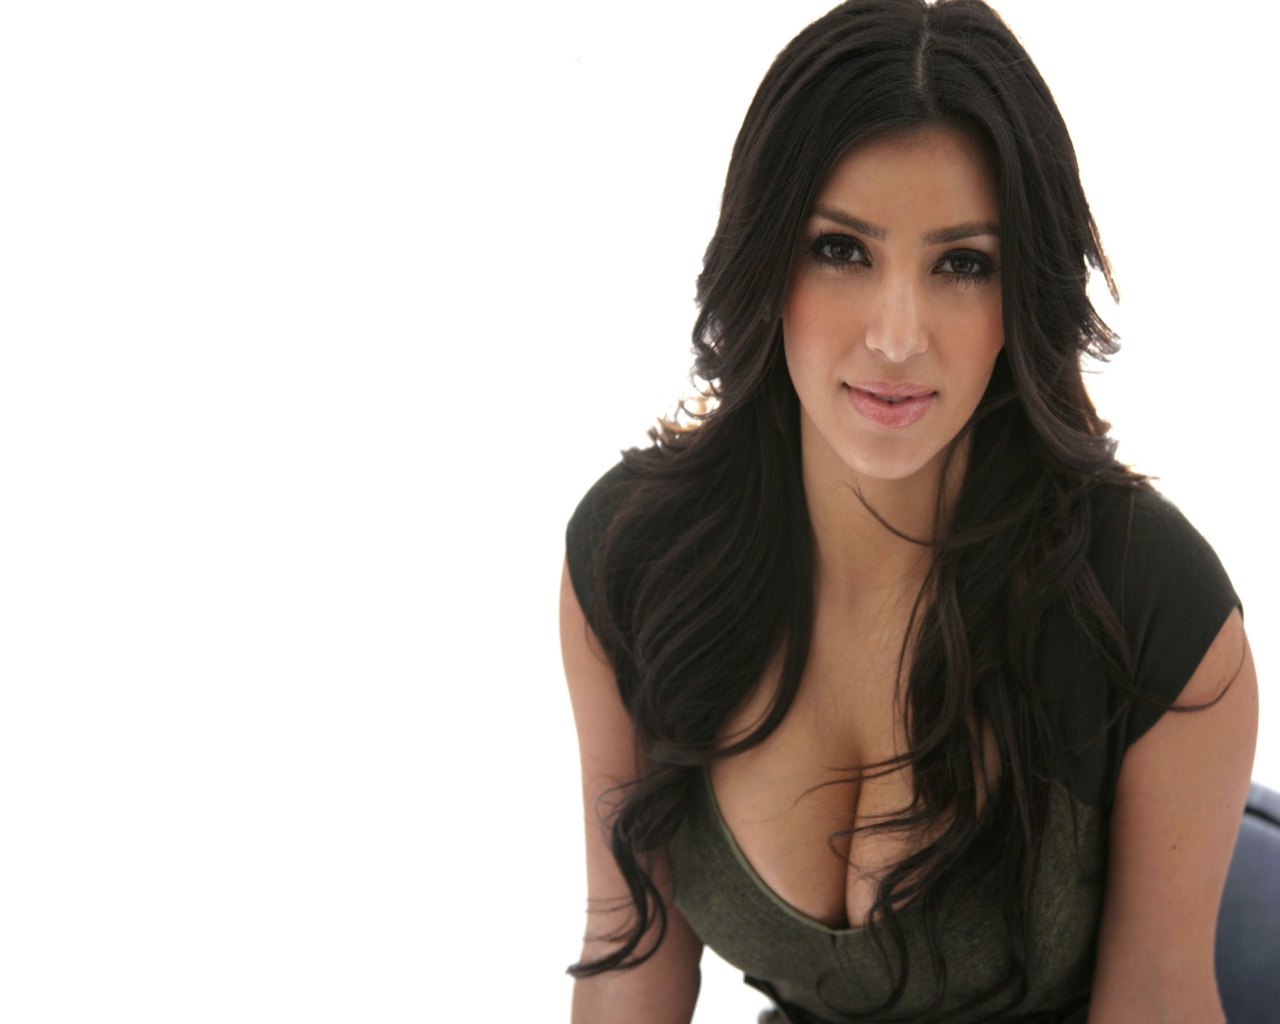 http://2.bp.blogspot.com/-_V-Aob4_PSQ/TYyOru4N5eI/AAAAAAAAAyE/qgDma39ii6E/s1600/kim_kardashian_hollywood_actress_hot_wallpaper.jpg